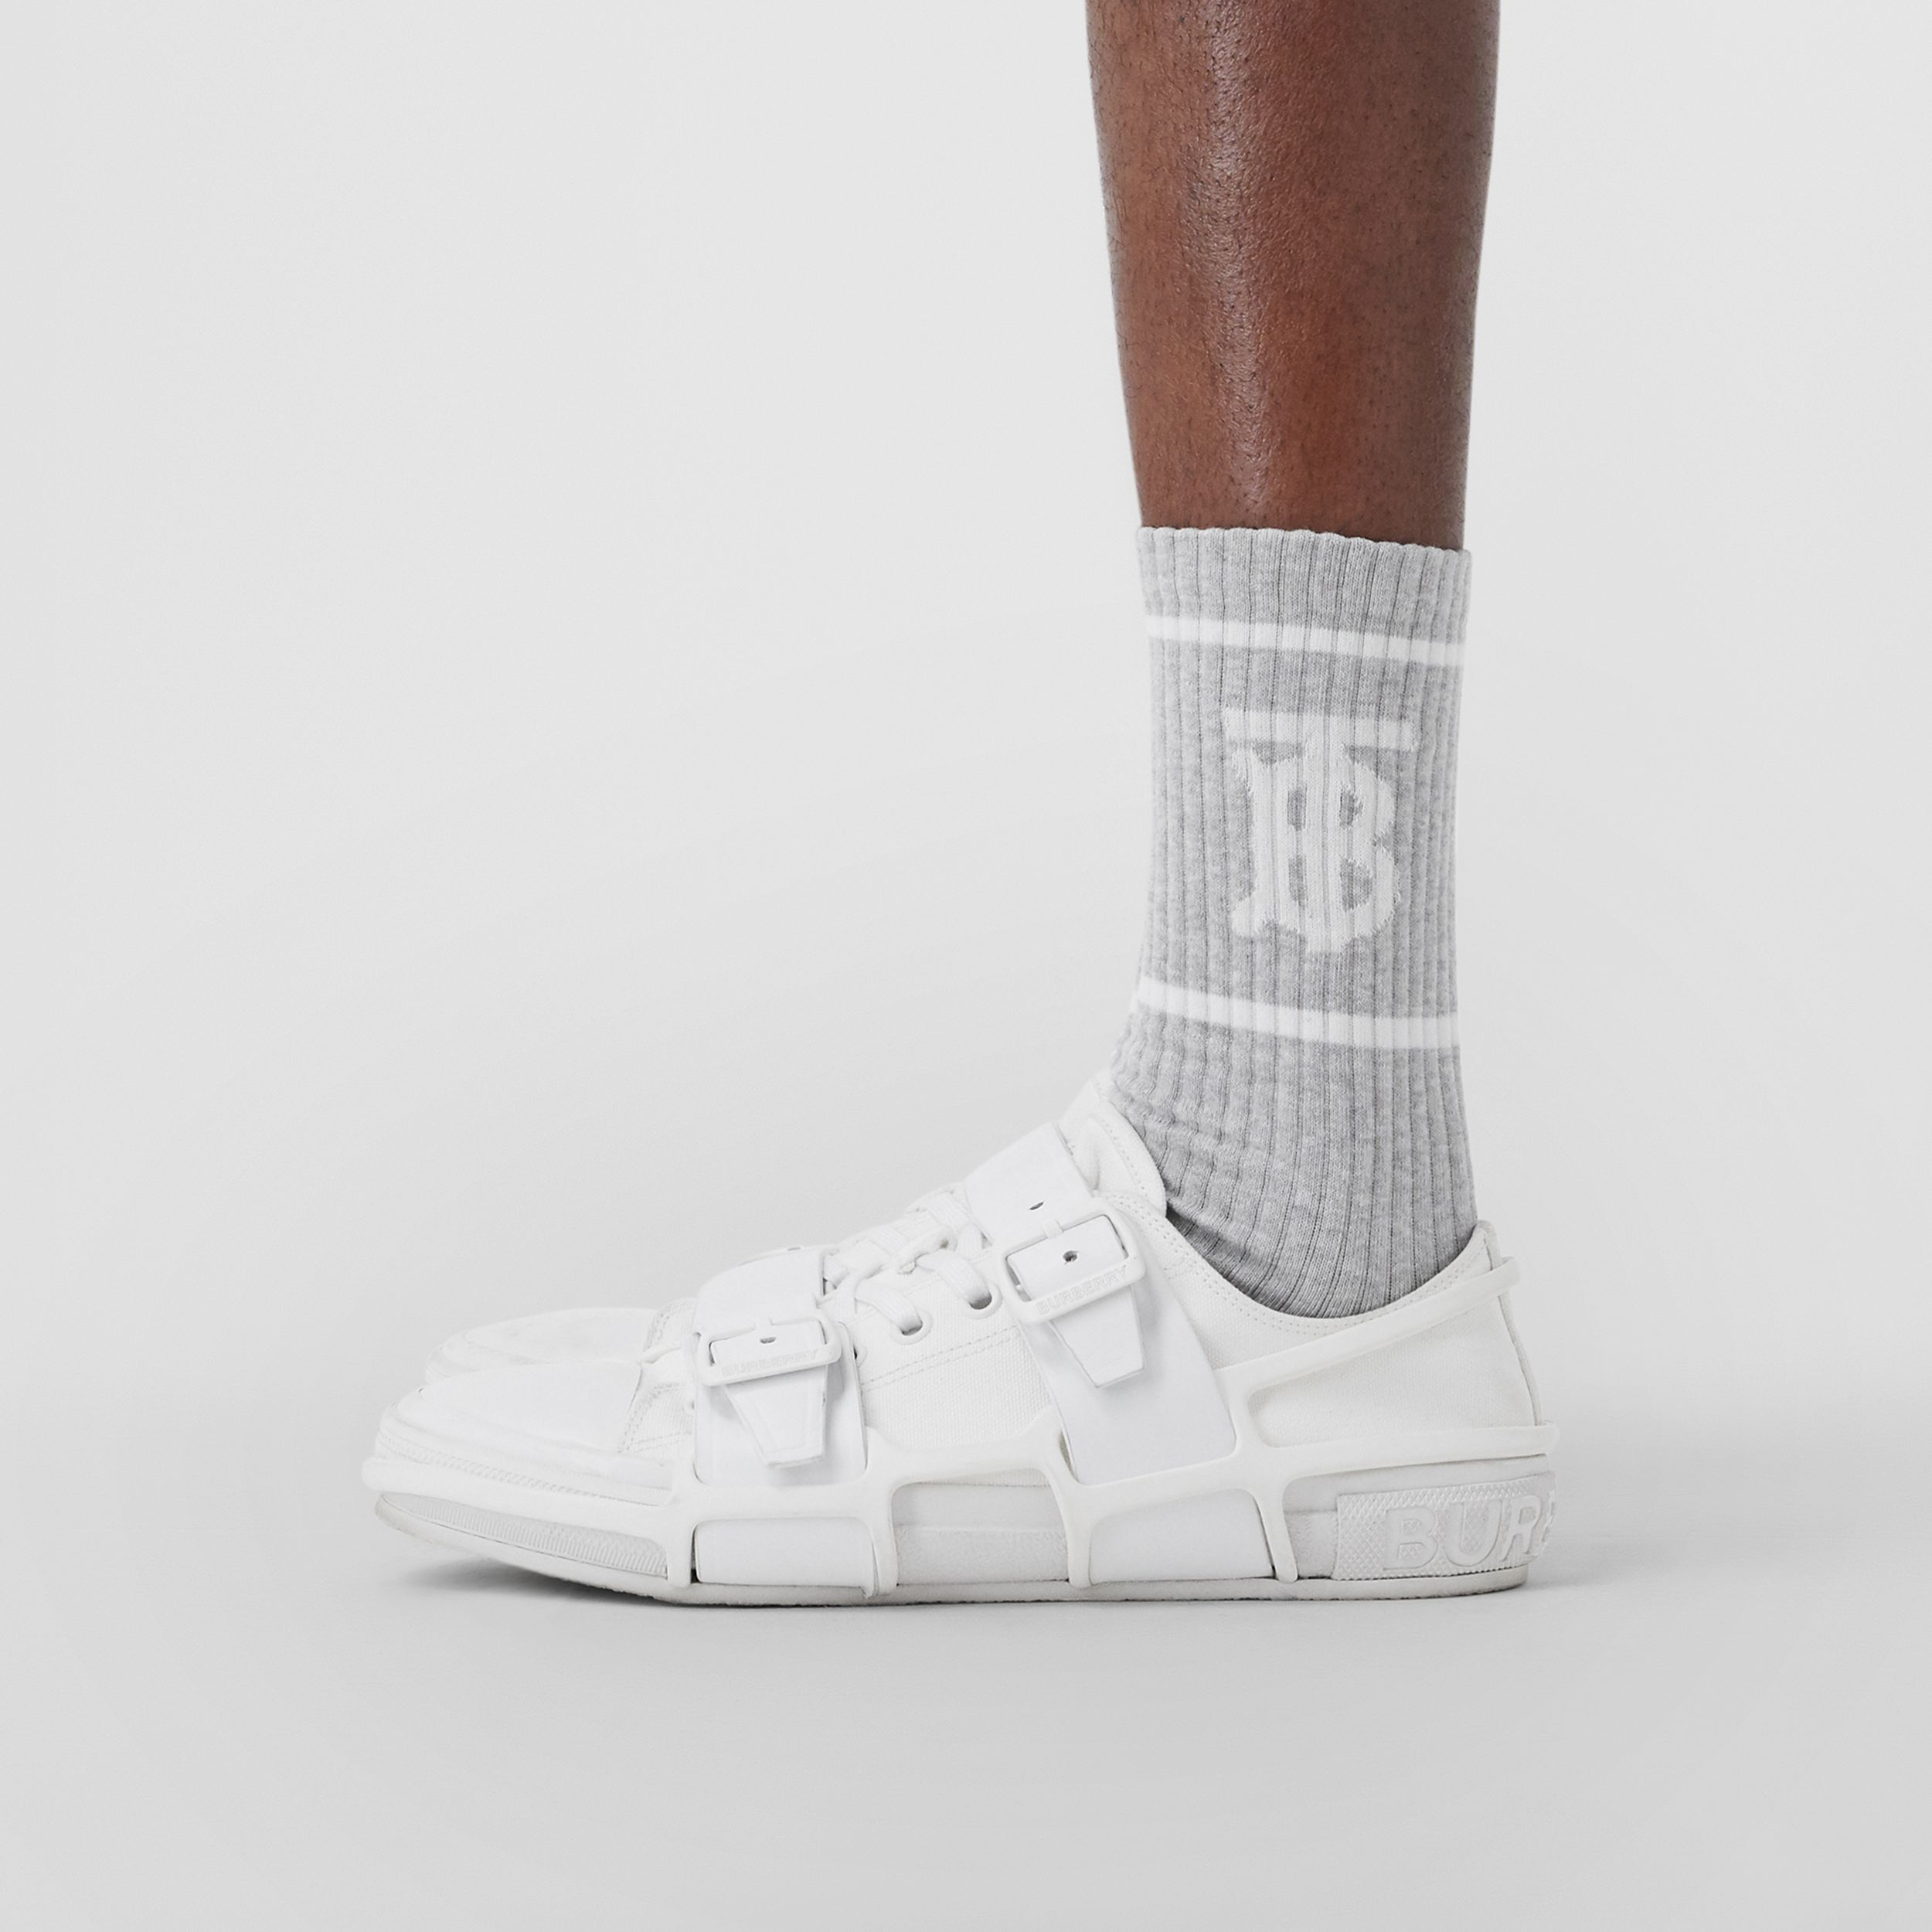 Monogram Motif Intarsia Socks in Pebble Grey | Burberry Singapore - 4